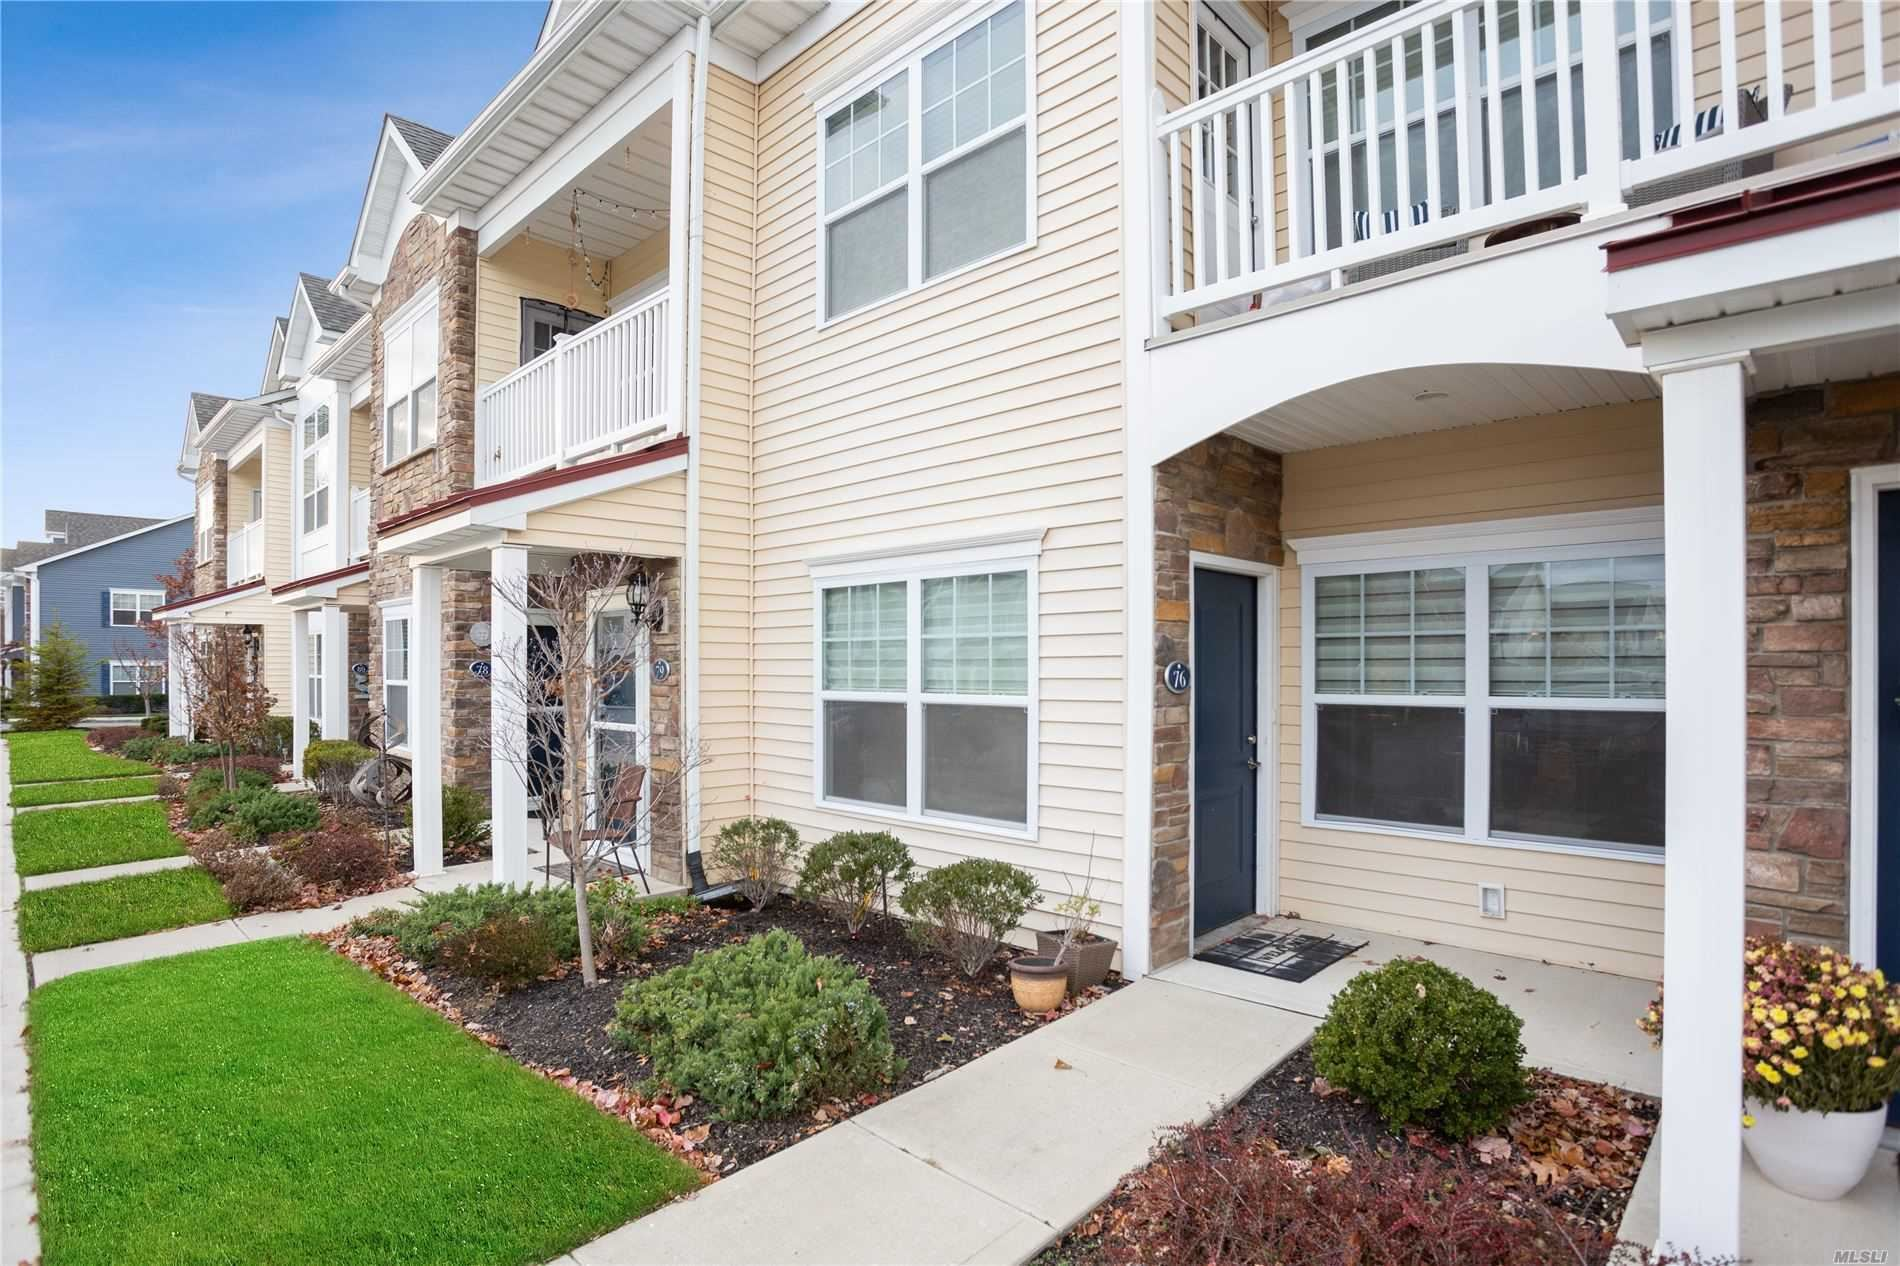 76 Millie Court, Patchogue, NY 11772 - MLS#: 3182506